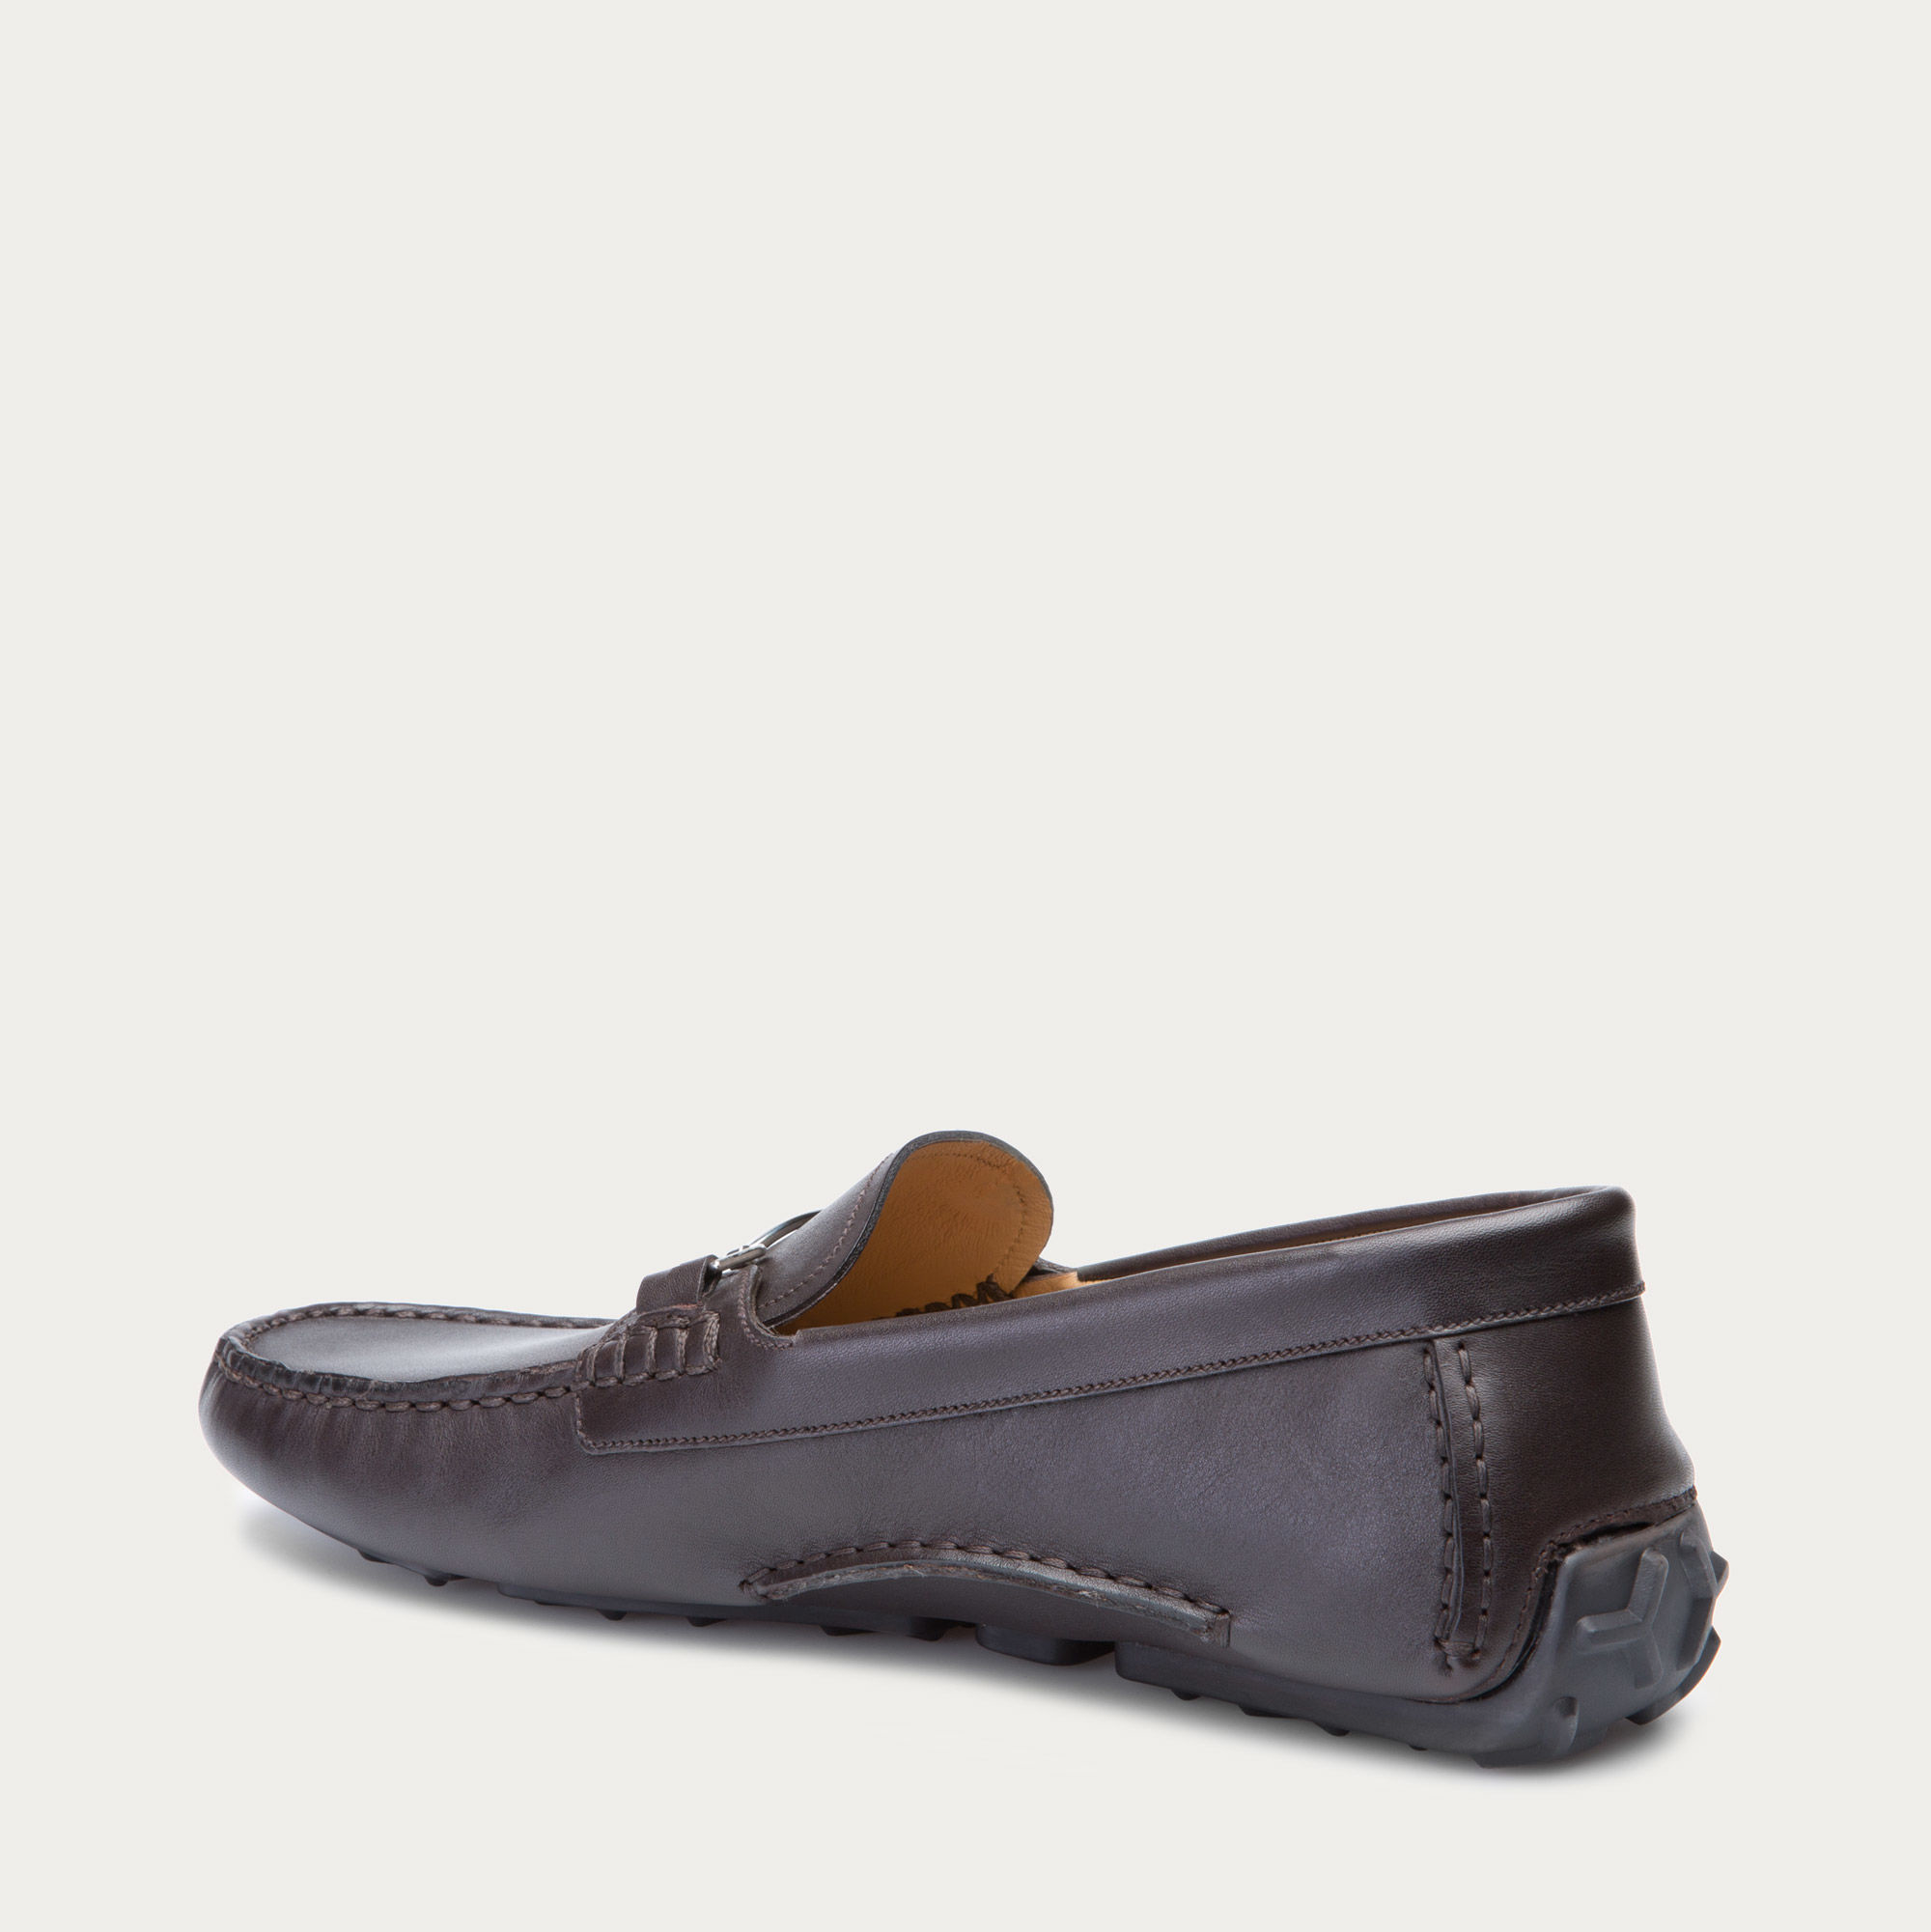 Bally Drintal Leather Driving Shoes In Black For Men